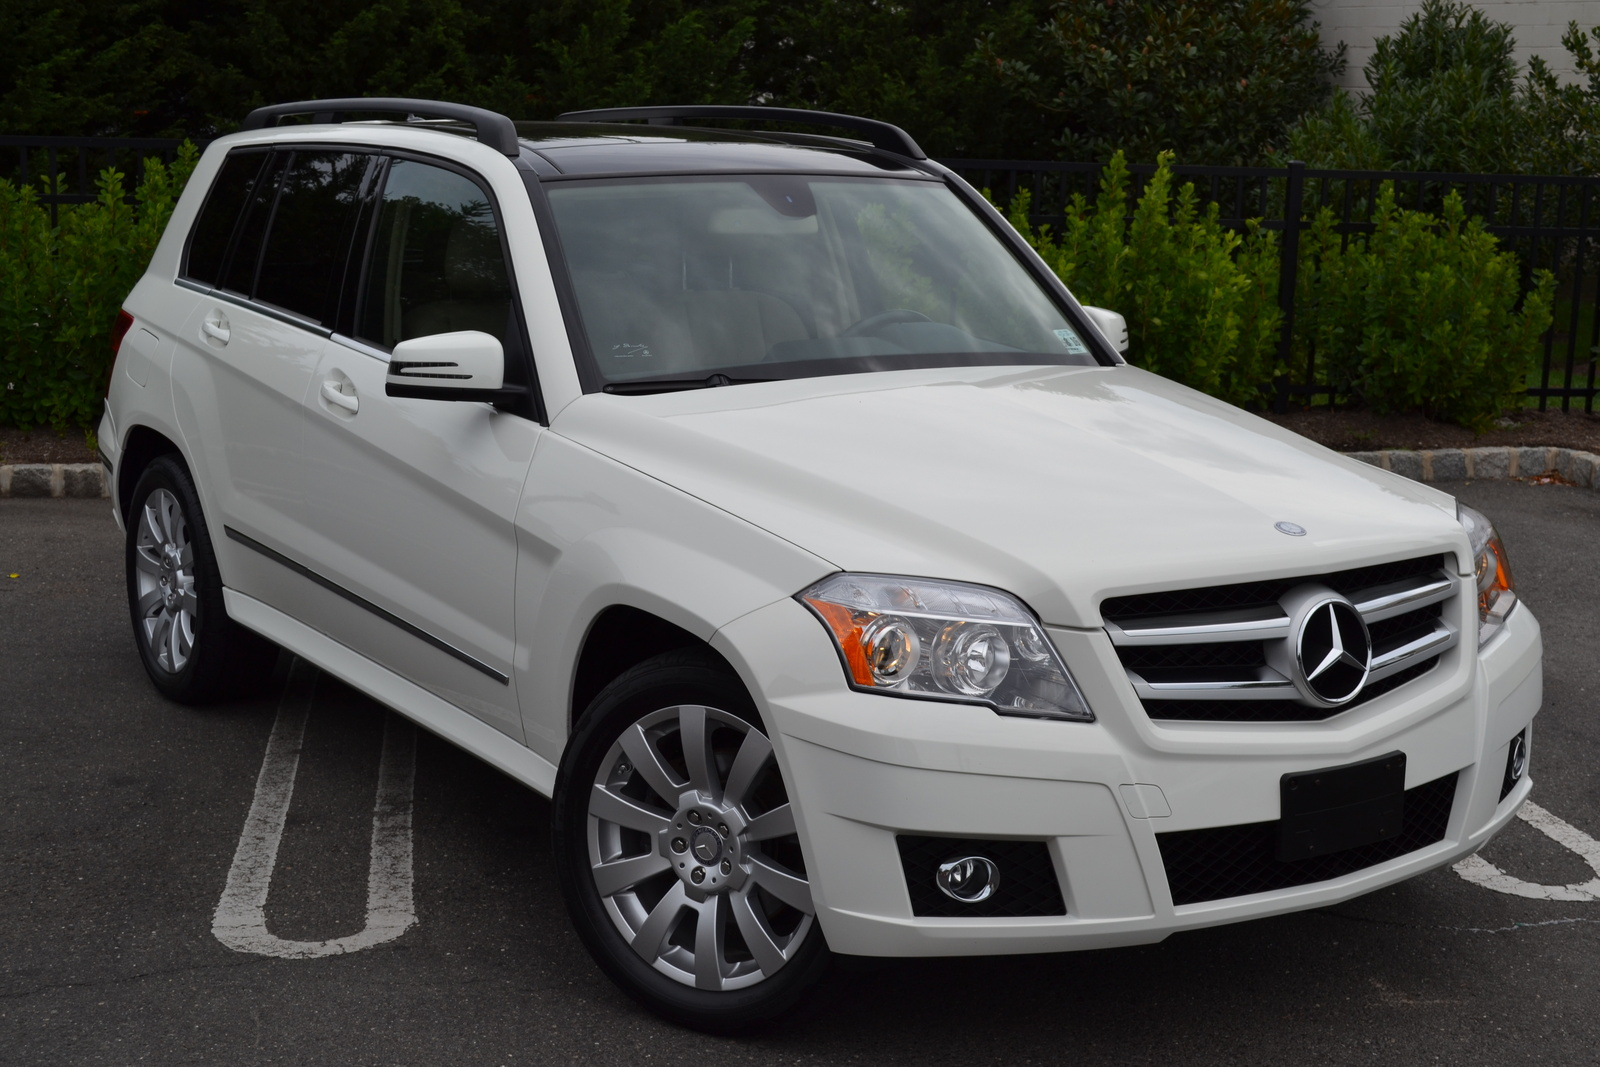 2012 mercedes benz glk class pictures cargurus for Mercedes benz glk 350 review